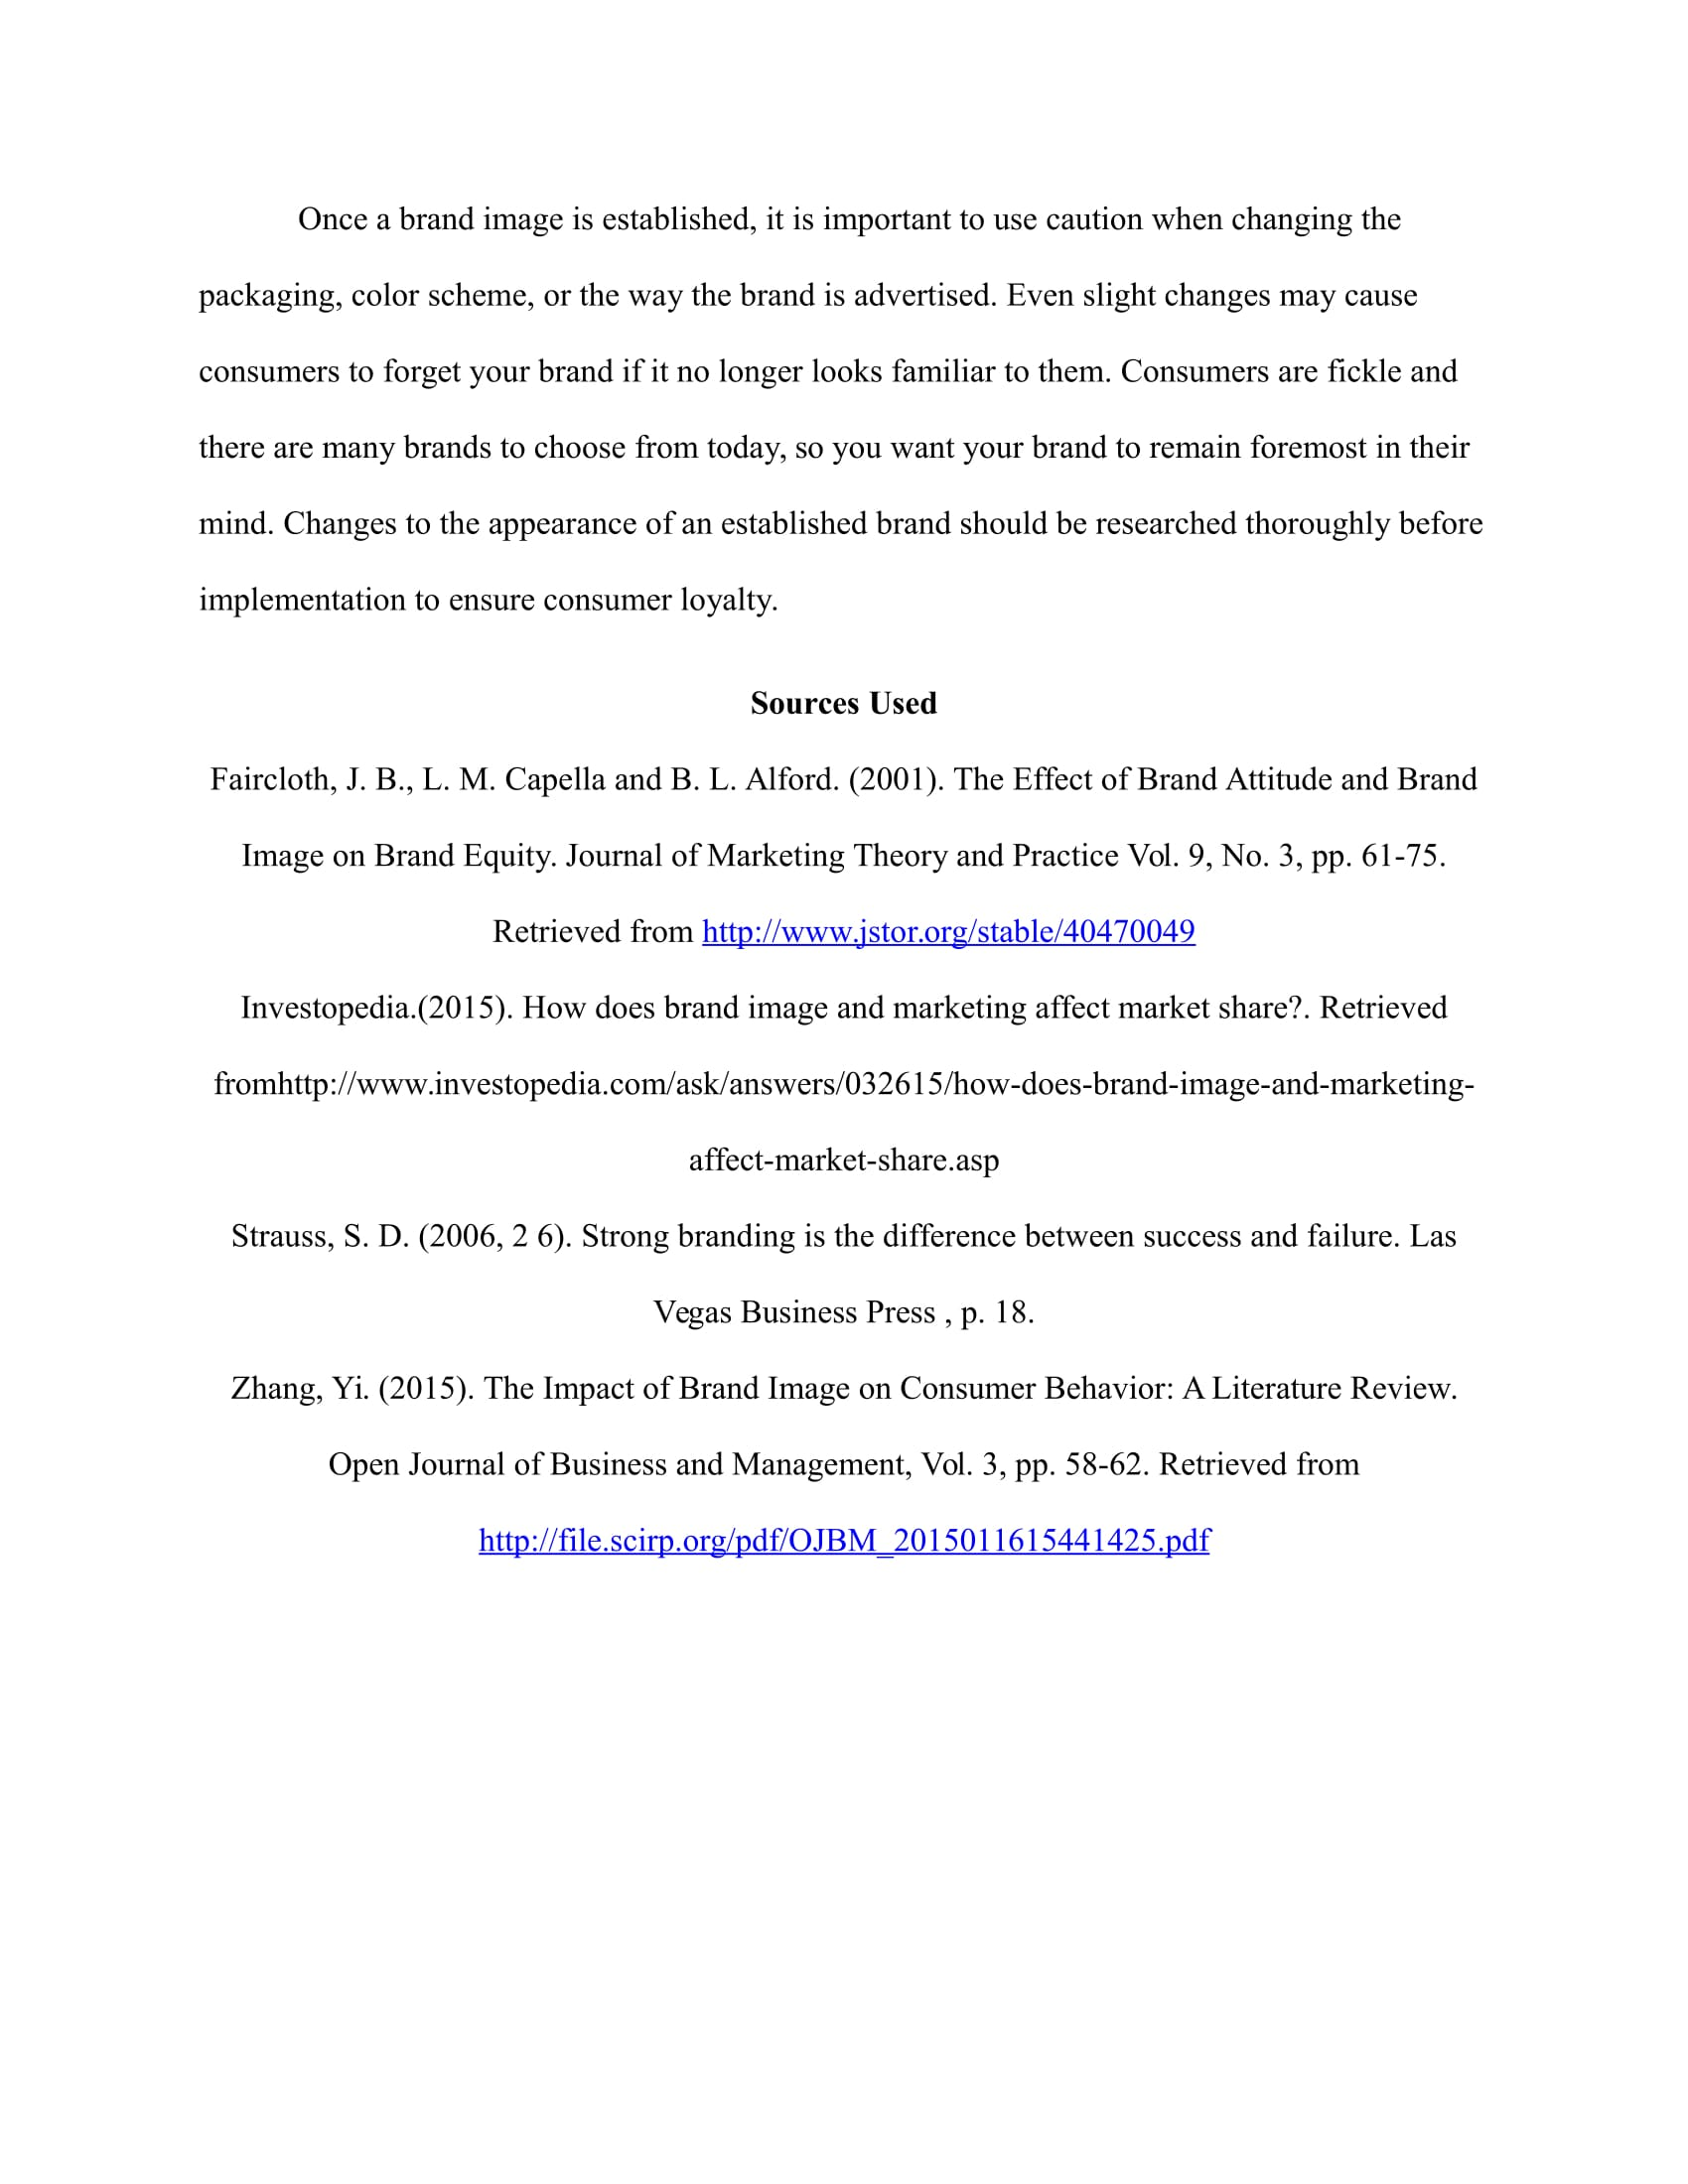 007 Expository Essay Samples Sample 1 Impressive Theme Examples High School For 7th Grade Full